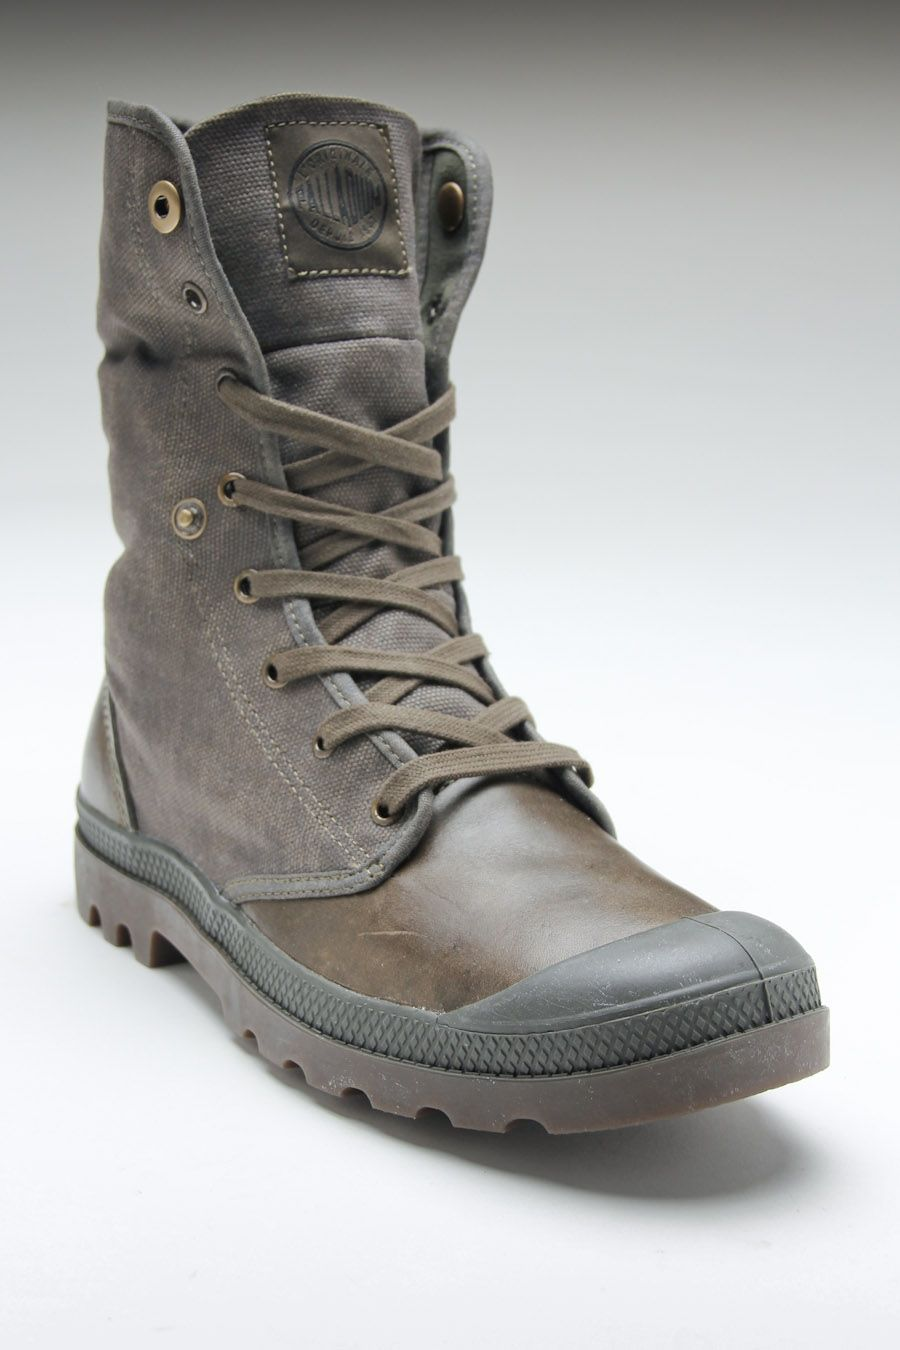 Men S Fashion Style Delivered Daily Mens Boots Fashion Boots Palladium Boots